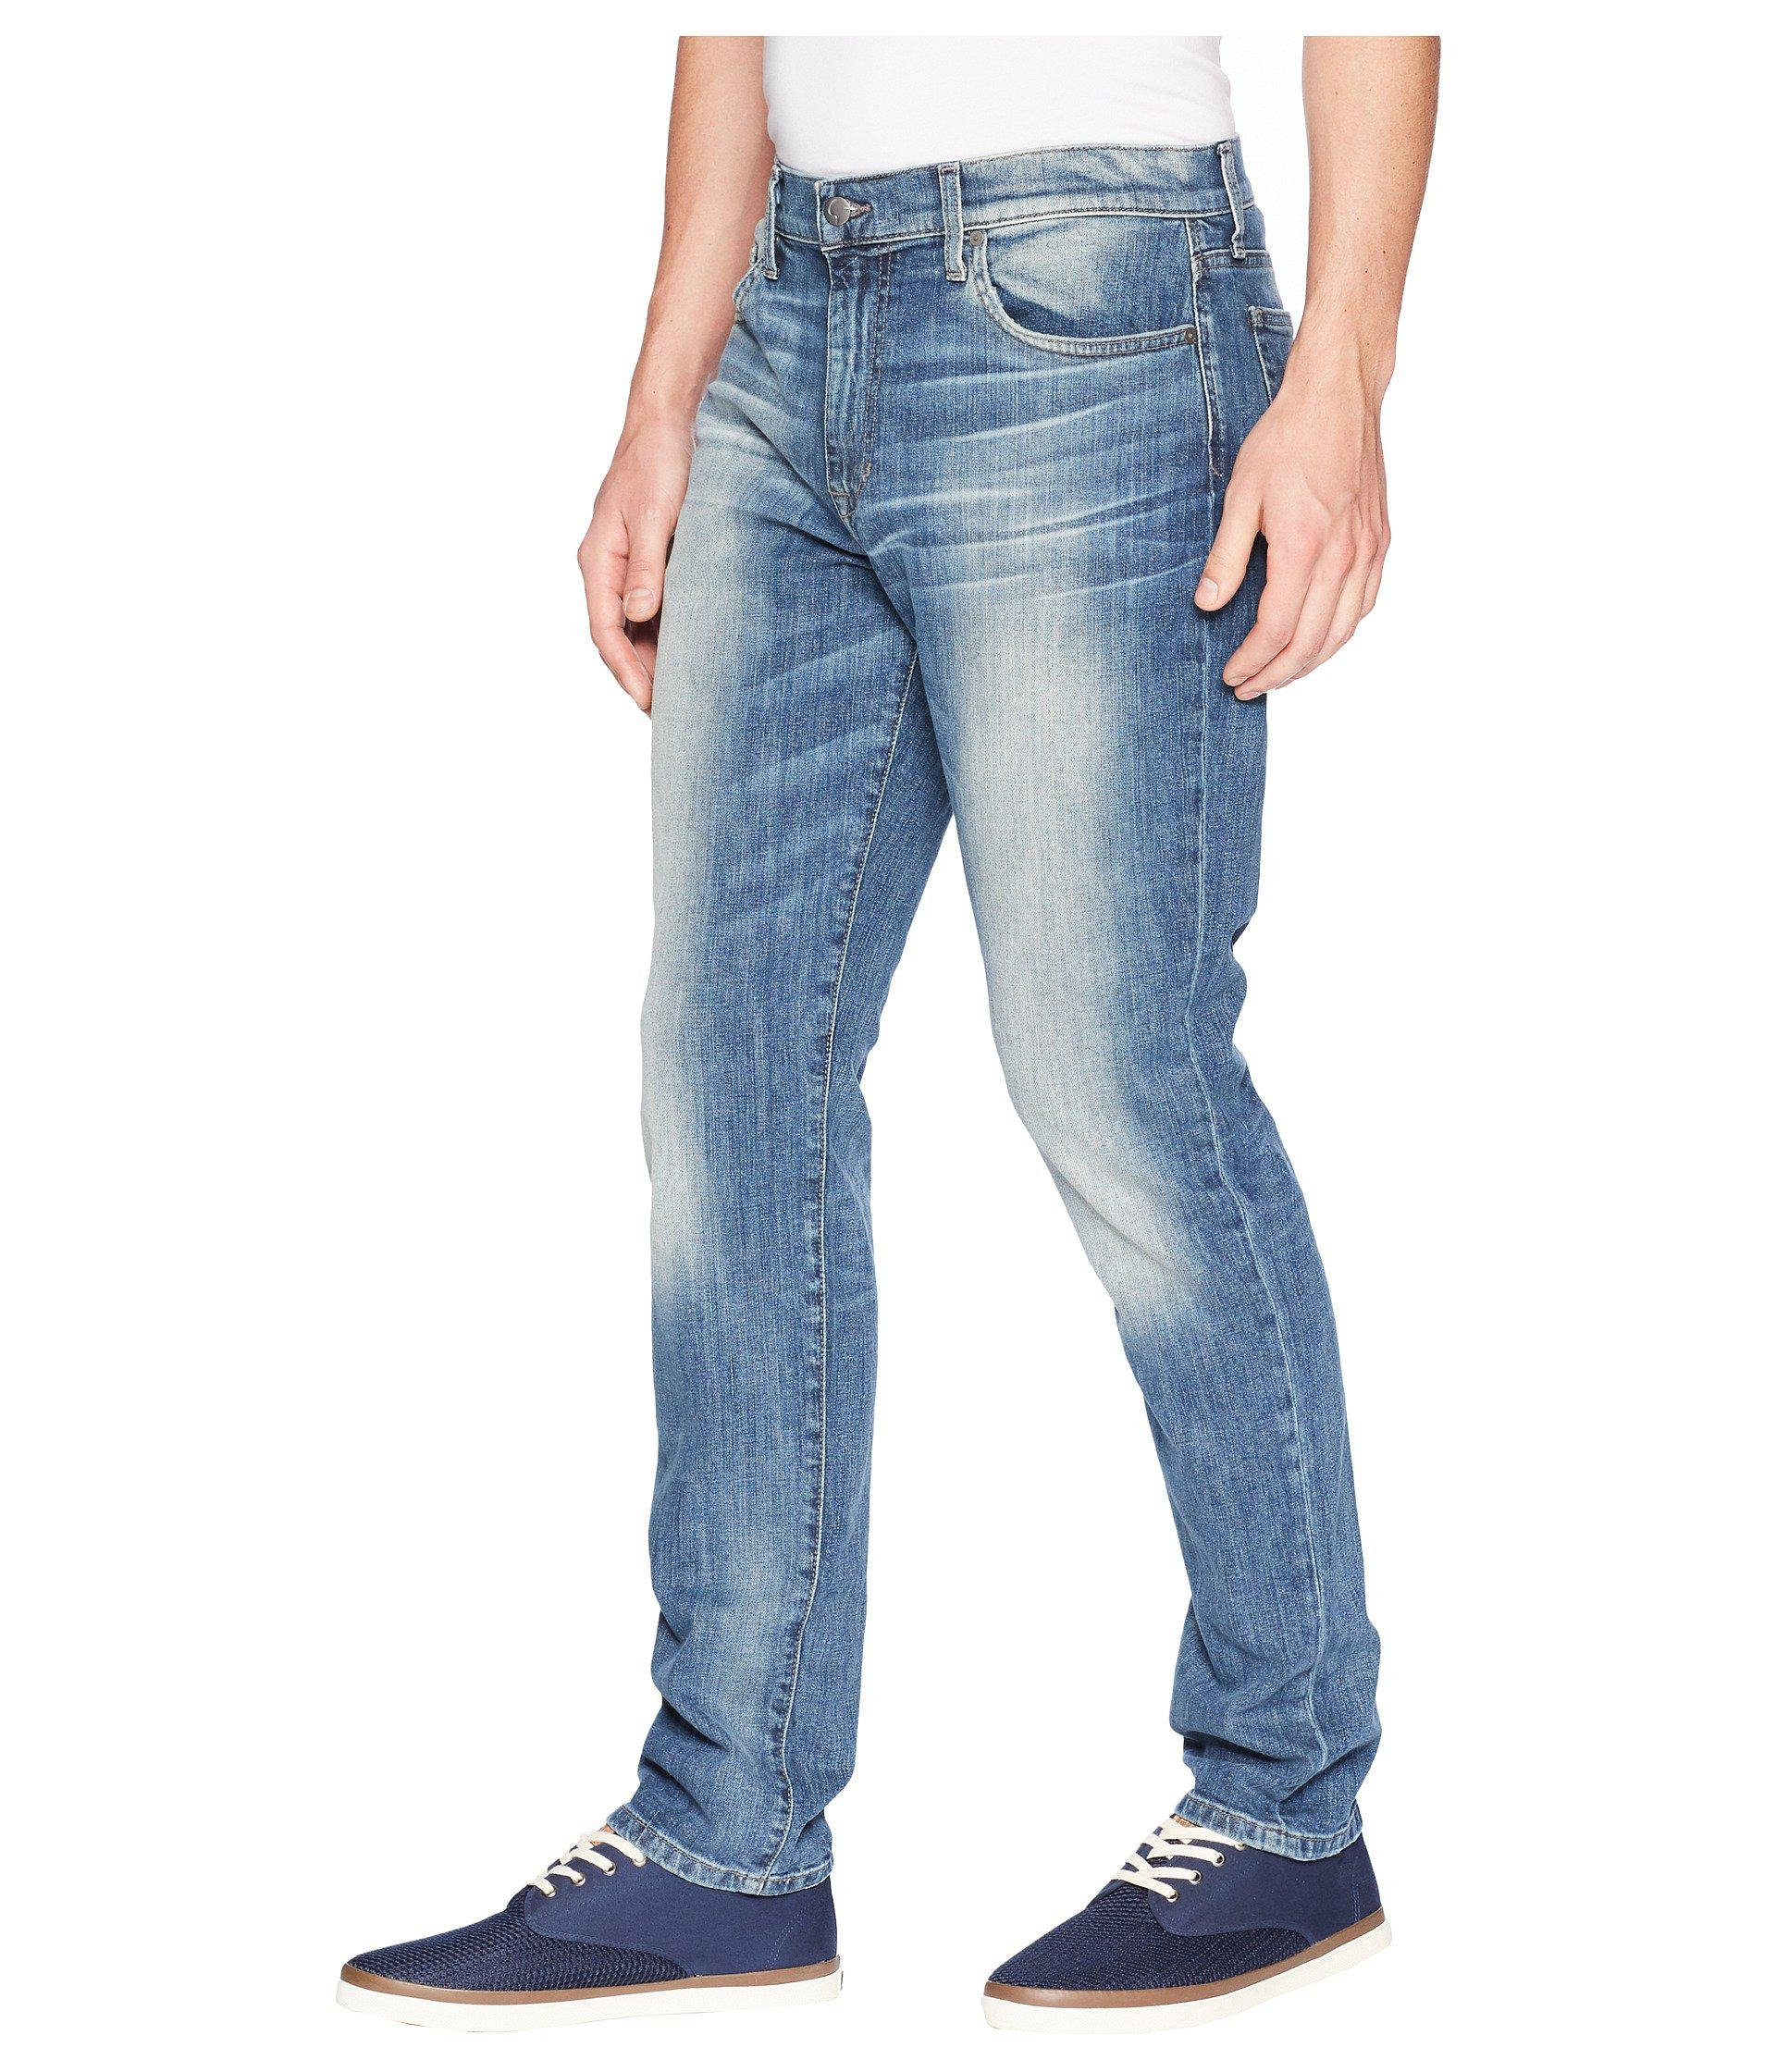 5a4bbd46c9b Lyst - Joe s Jeans The Folsom Athletic Slim Fit In Cole in Blue for Men -  Save 42%